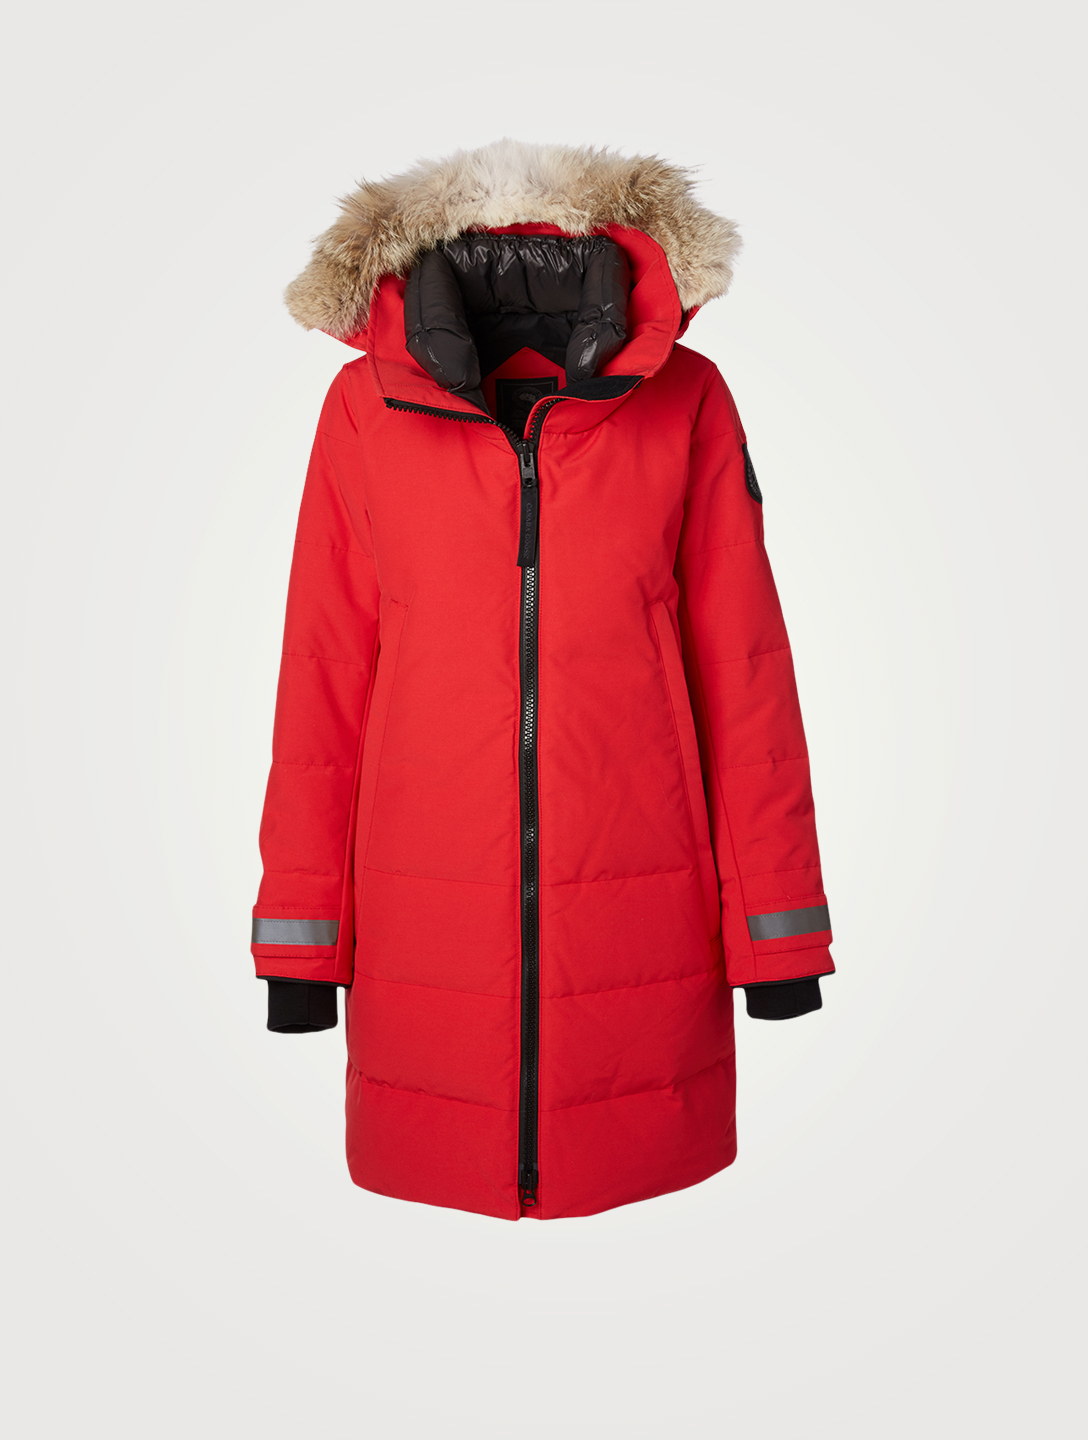 CANADA GOOSE Kenton Black Label Down Parka With Fur Hood Women's Red